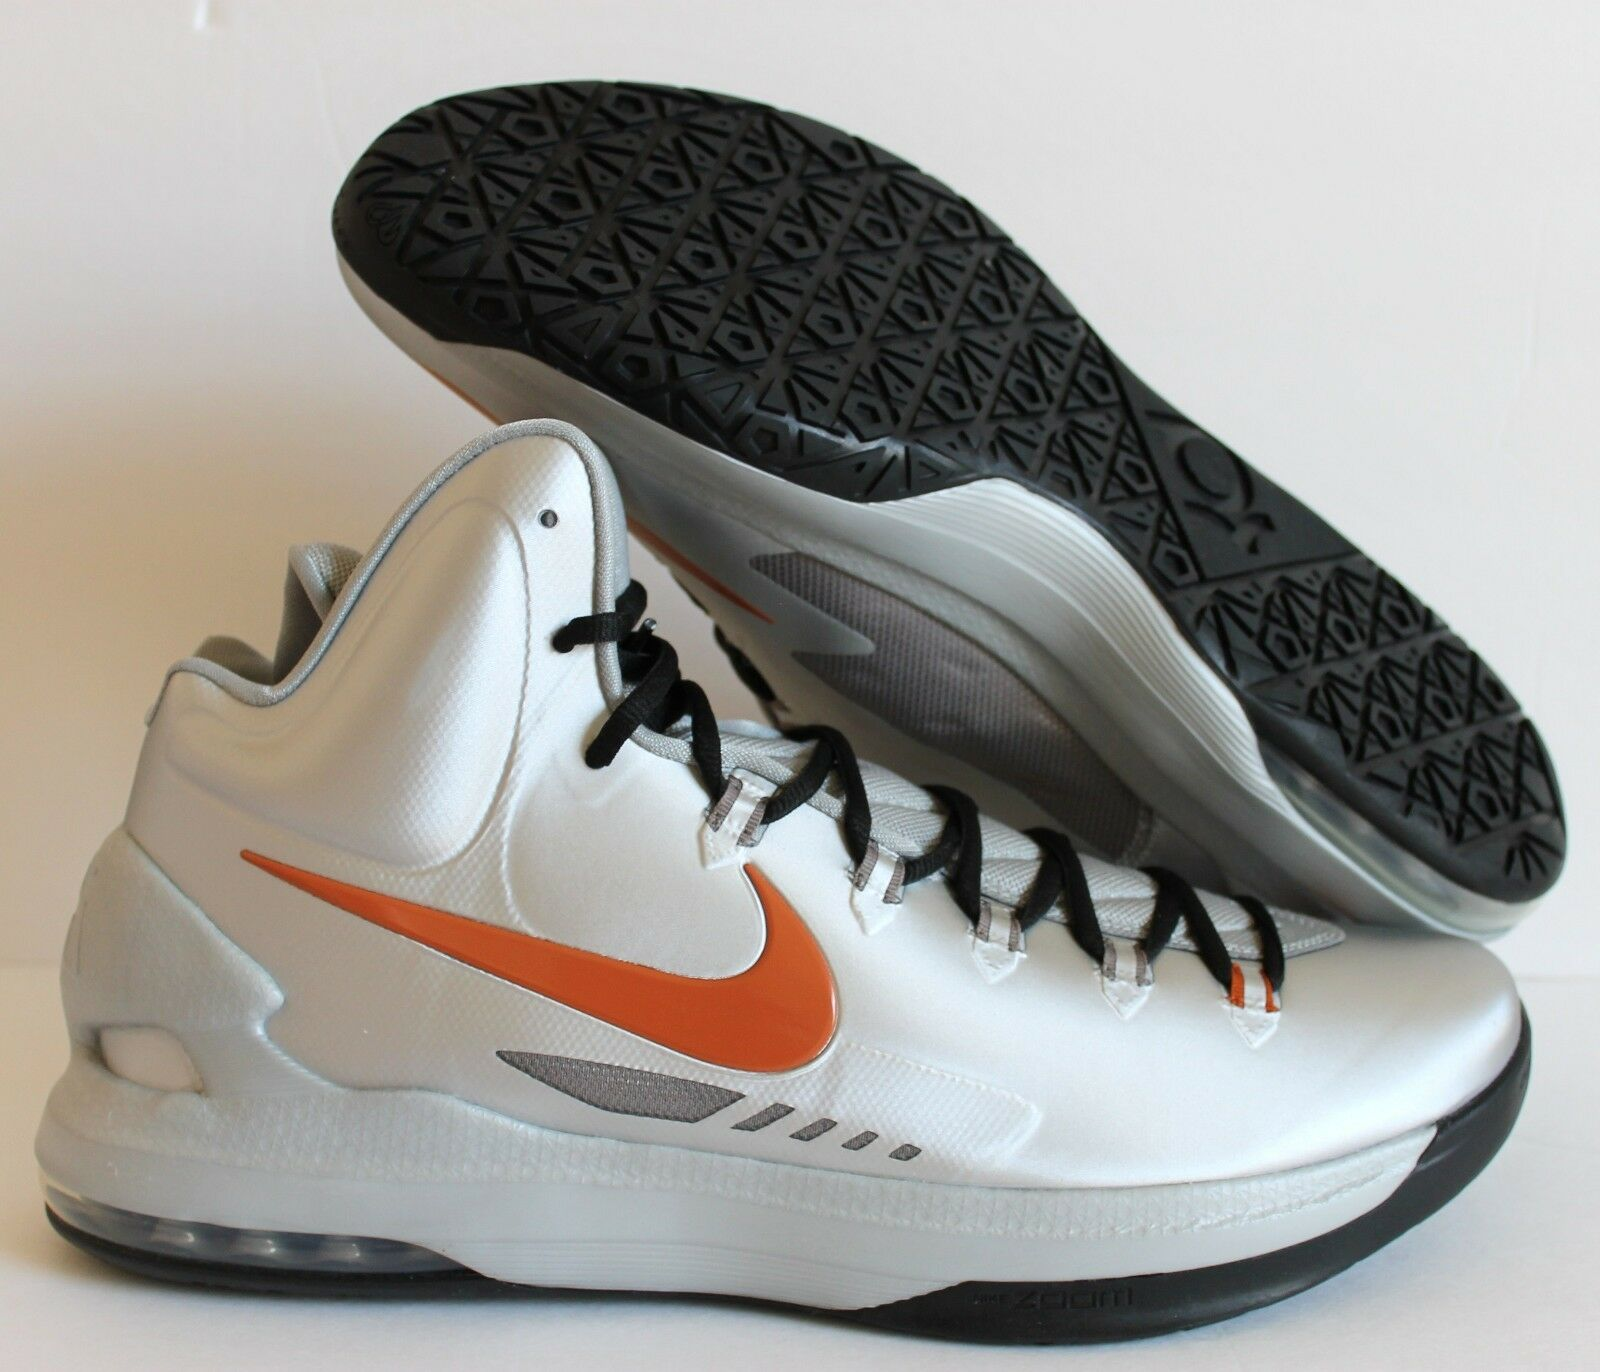 nike kevin durant 1 price